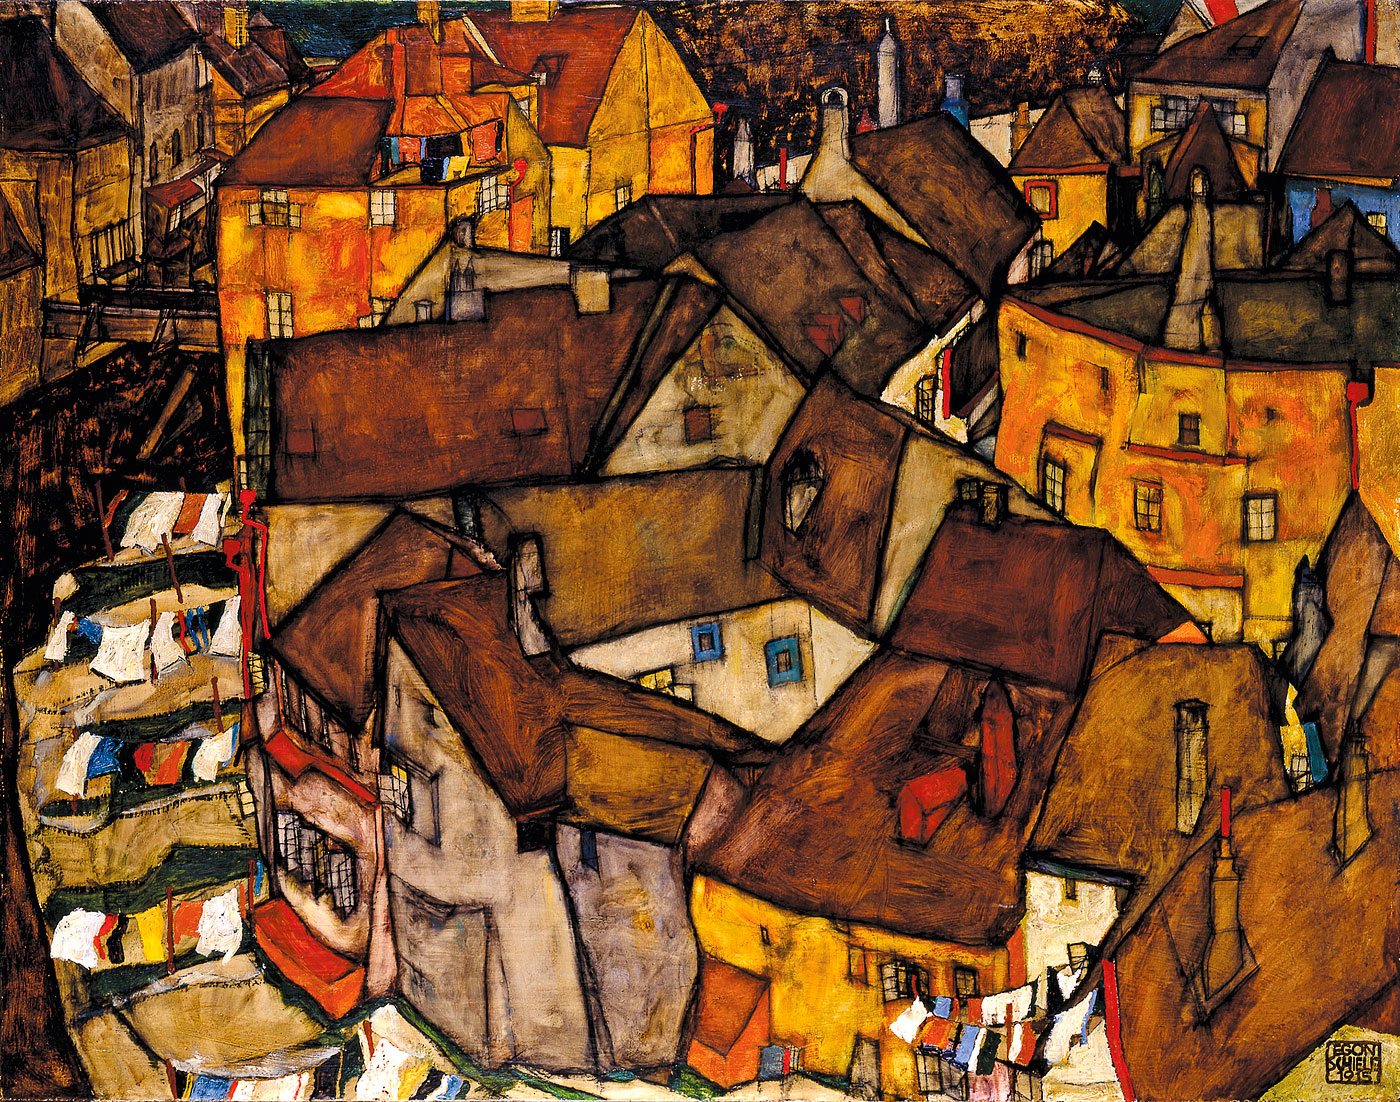 Český Krumlov became an inspiration for Egon Schiele's work